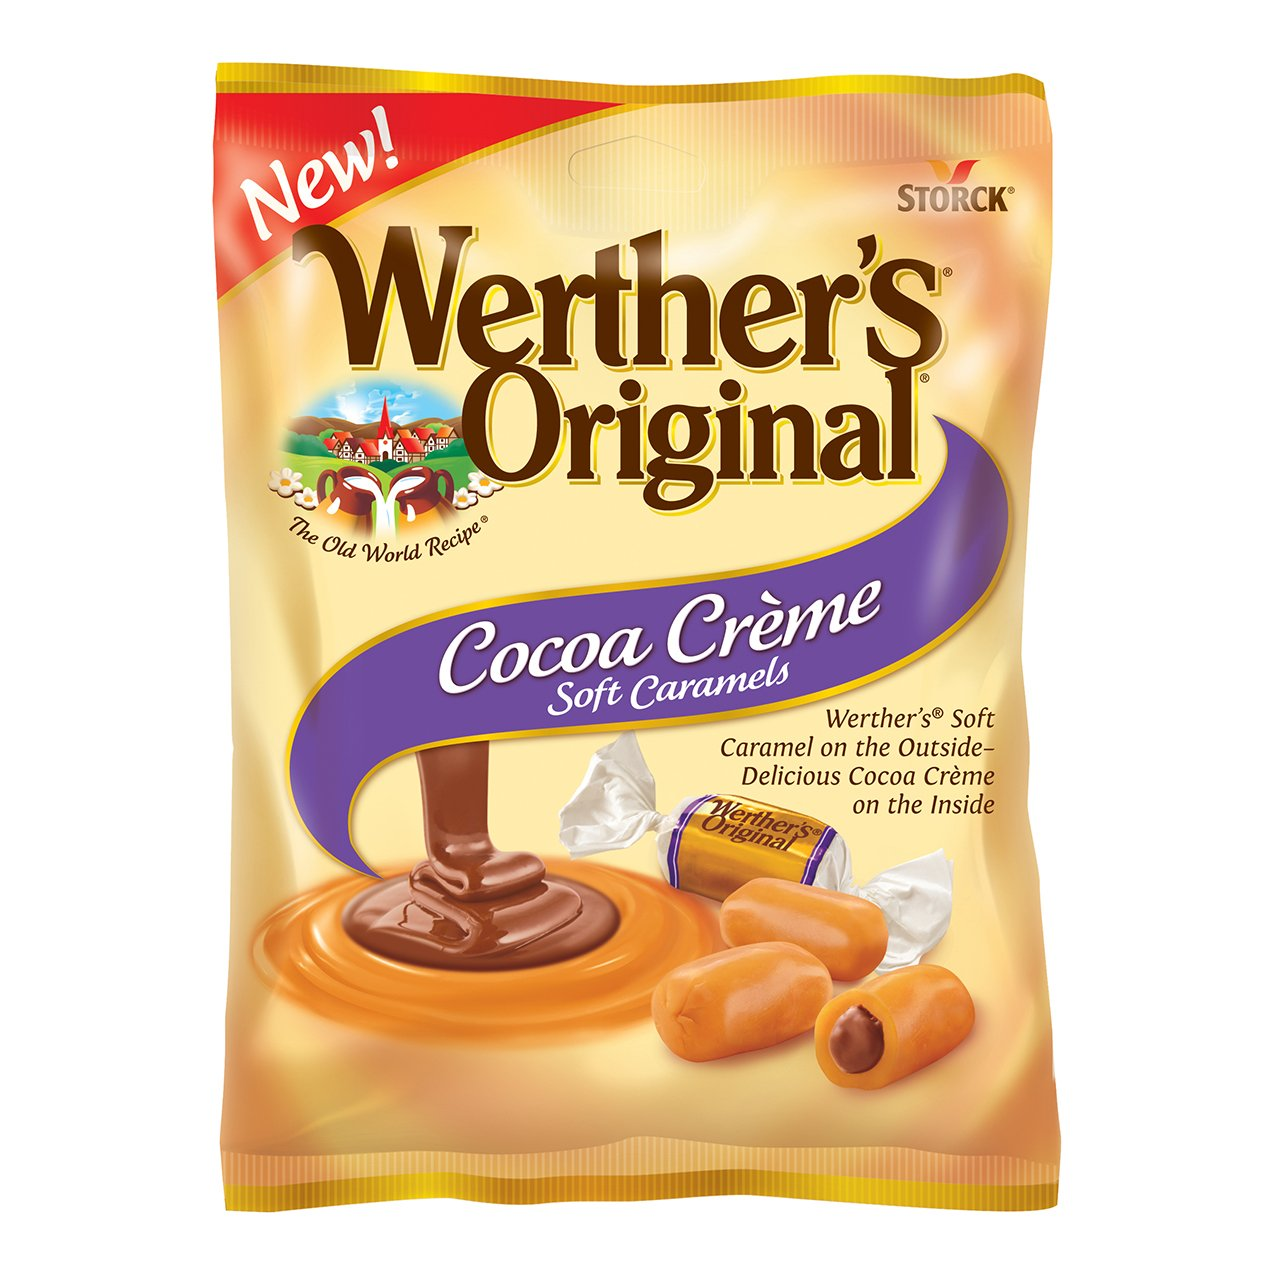 WERTHER'S ORIGINAL Cocoa Crème Soft Caramels, 4.51 Ounce Bag (Pack of 12), Bulk Candy, Individually Wrapped Candy Caramels, Caramel Candy Sweets, Bag of Candy